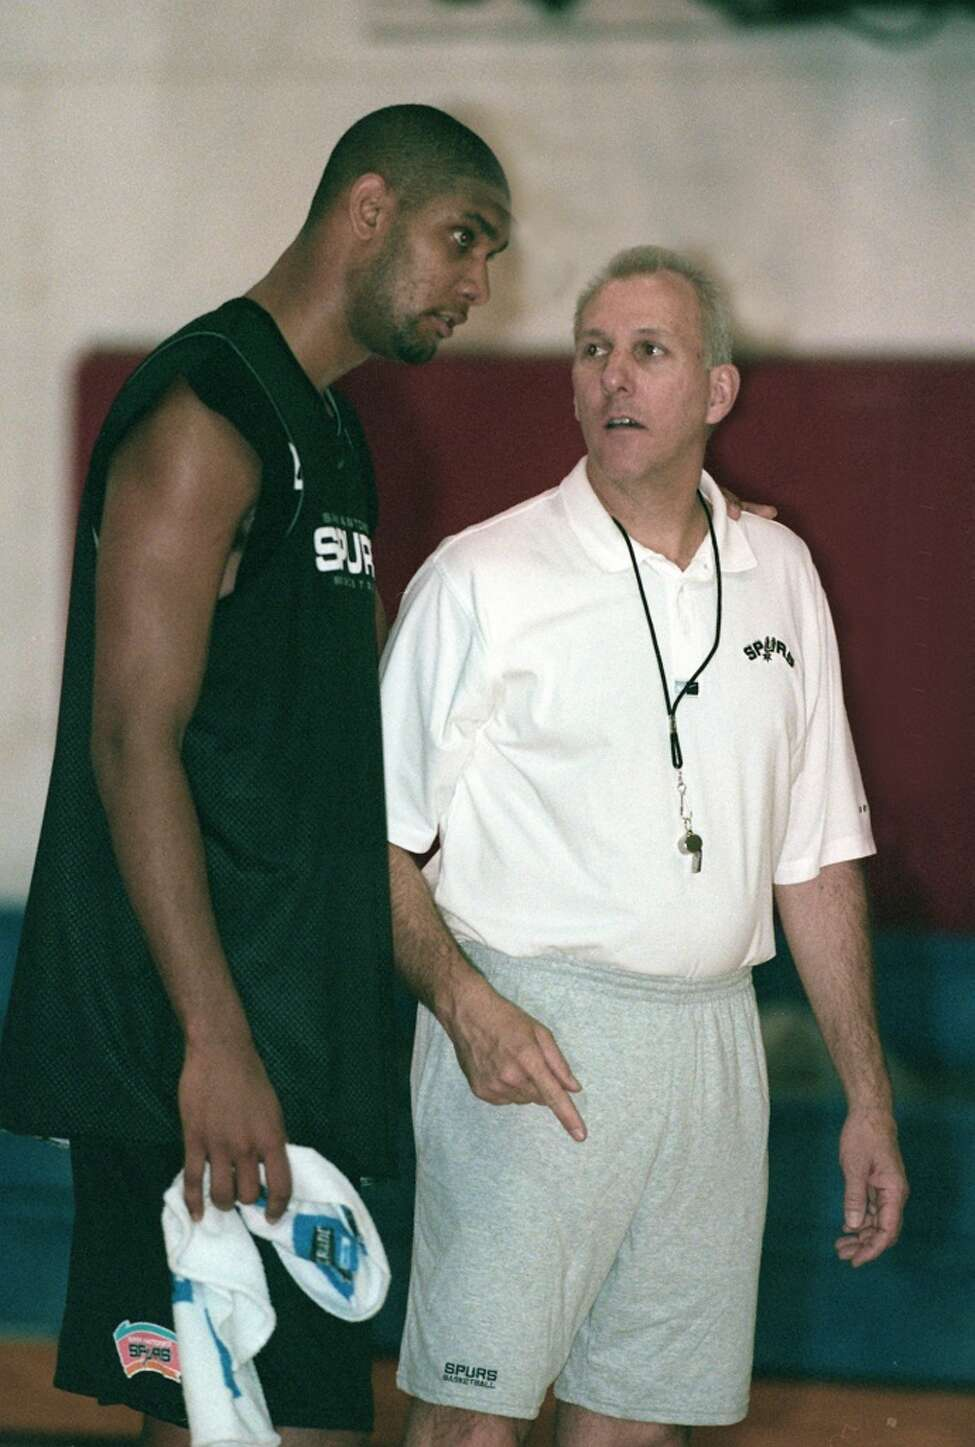 Tim Duncan and Coach Gregg Popovich talk after the first day of training camp for the Spurs, October 2,1999.